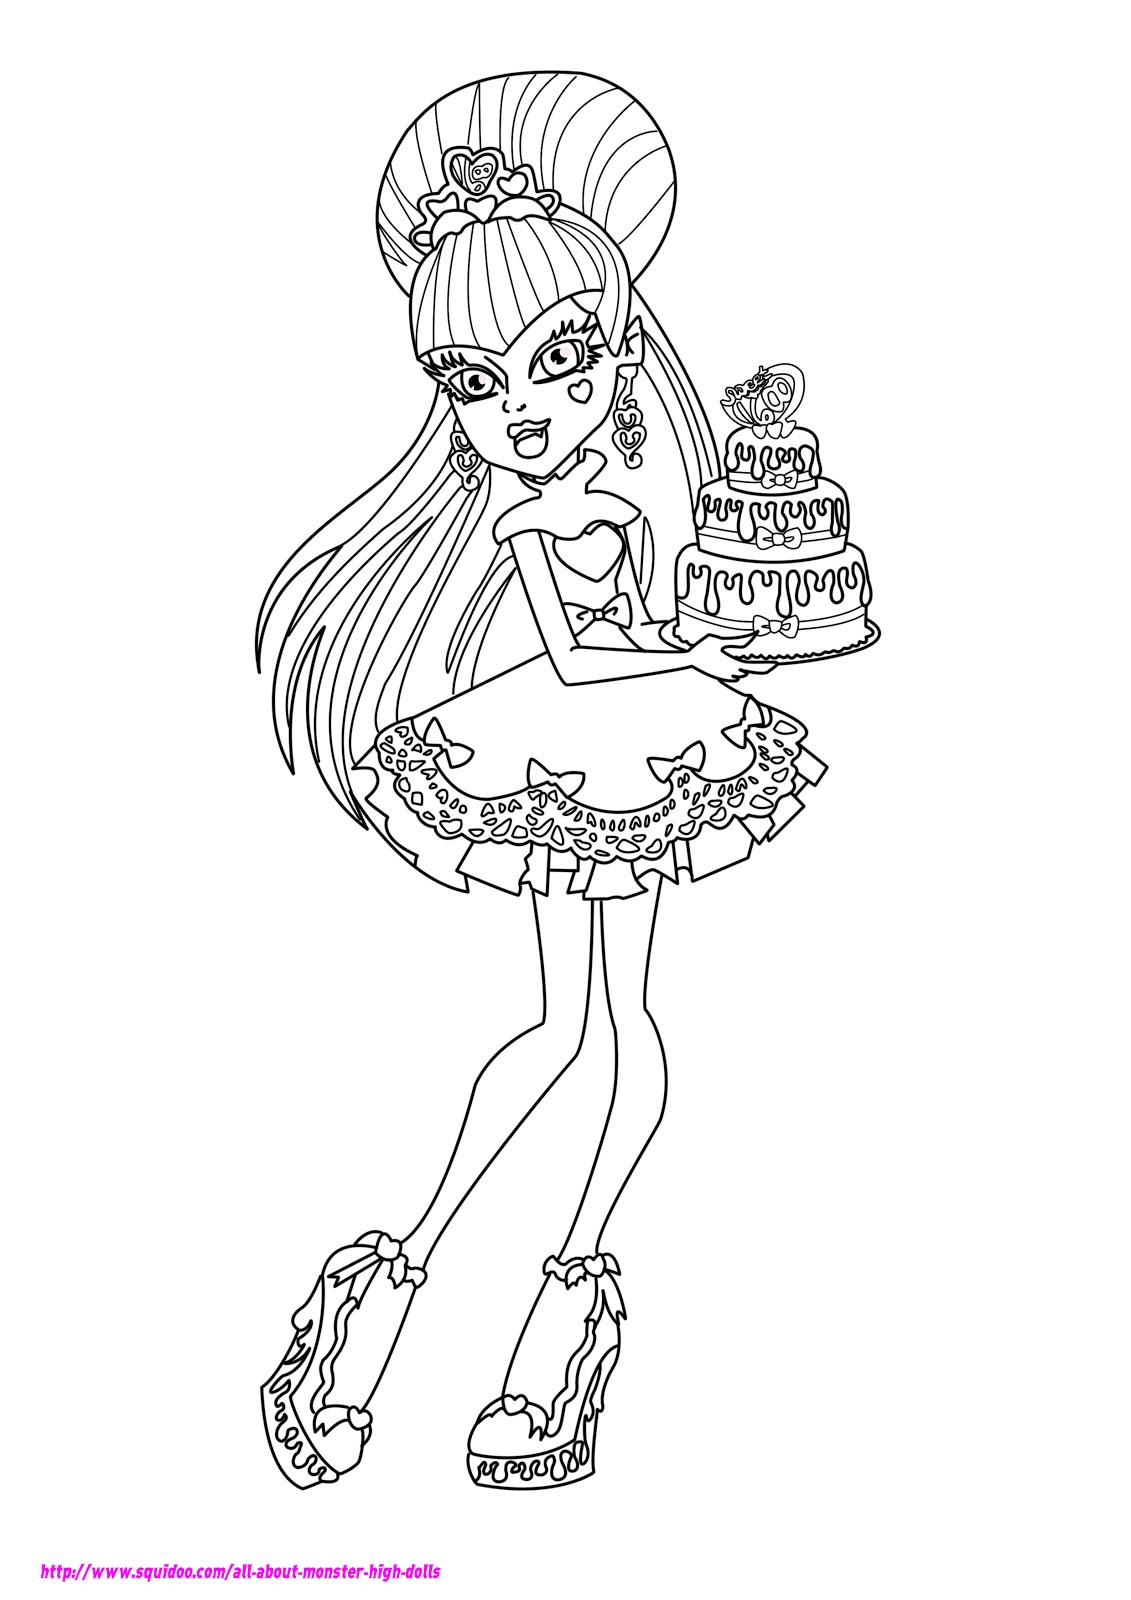 crayola monster high coloring pages - monster high coloring pages 2018 dr odd